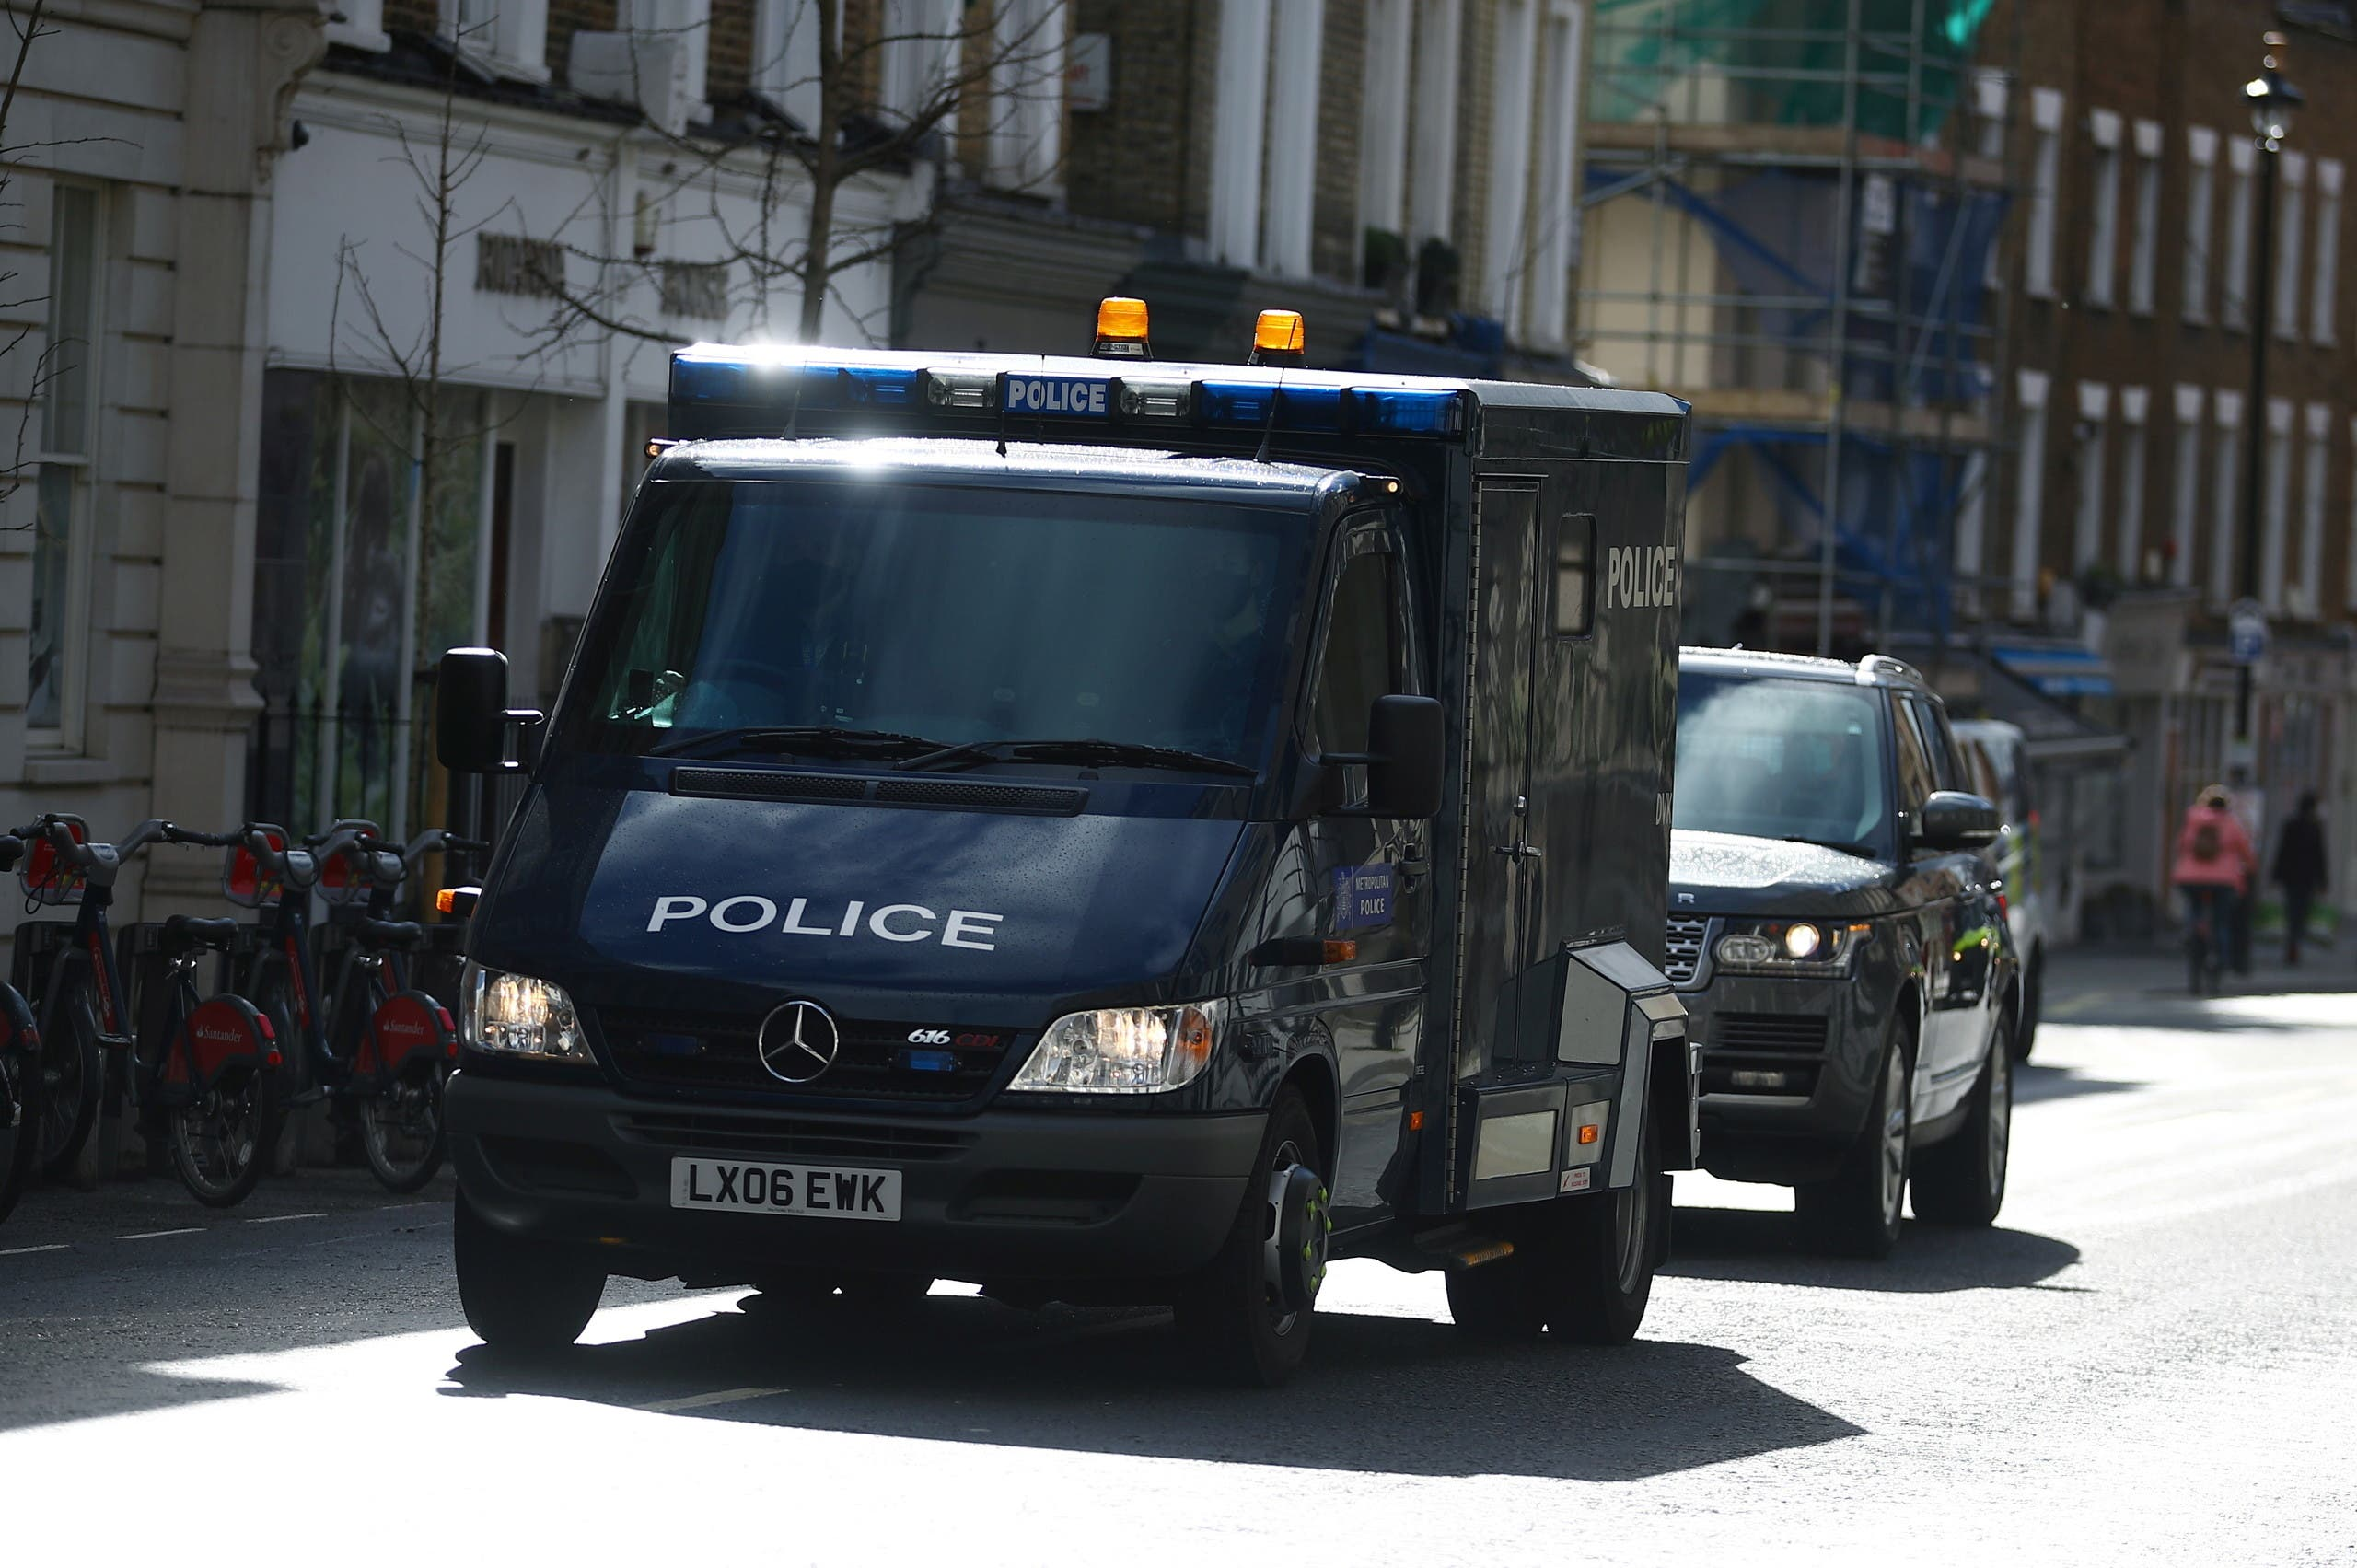 A police van believed to be carrying British Police Officer Wayne Couzens who is charged with the murder and kidnap of 33-year-old Sarah Everard arrives at Westminster Magistrates Court in London, Britain, March 13, 2021. (Reuters)